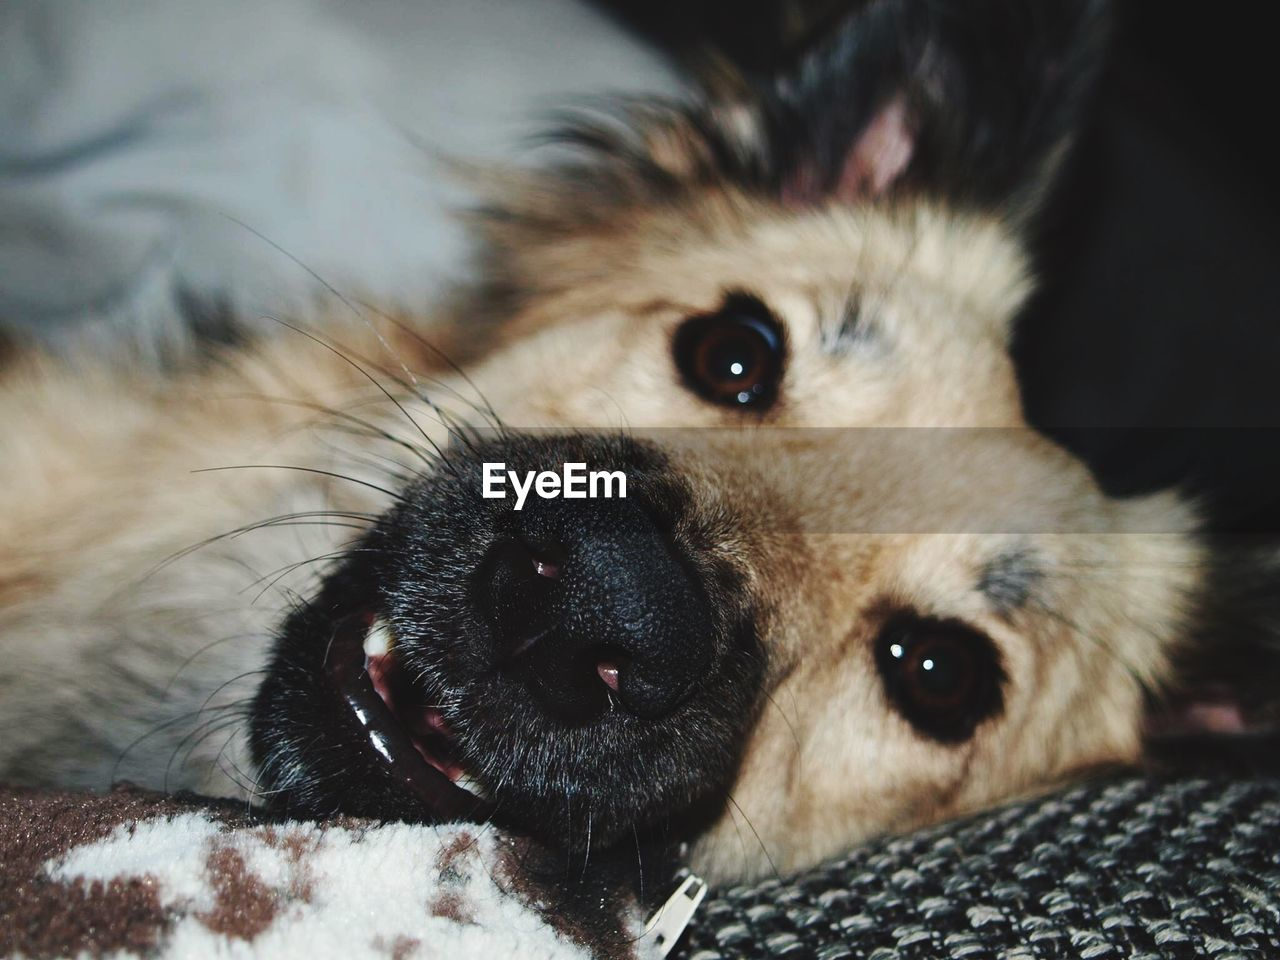 one animal, mammal, animal themes, animal, domestic, pets, dog, canine, domestic animals, vertebrate, close-up, relaxation, looking at camera, portrait, no people, animal body part, indoors, focus on foreground, lying down, animal head, whisker, animal eye, snout, animal mouth